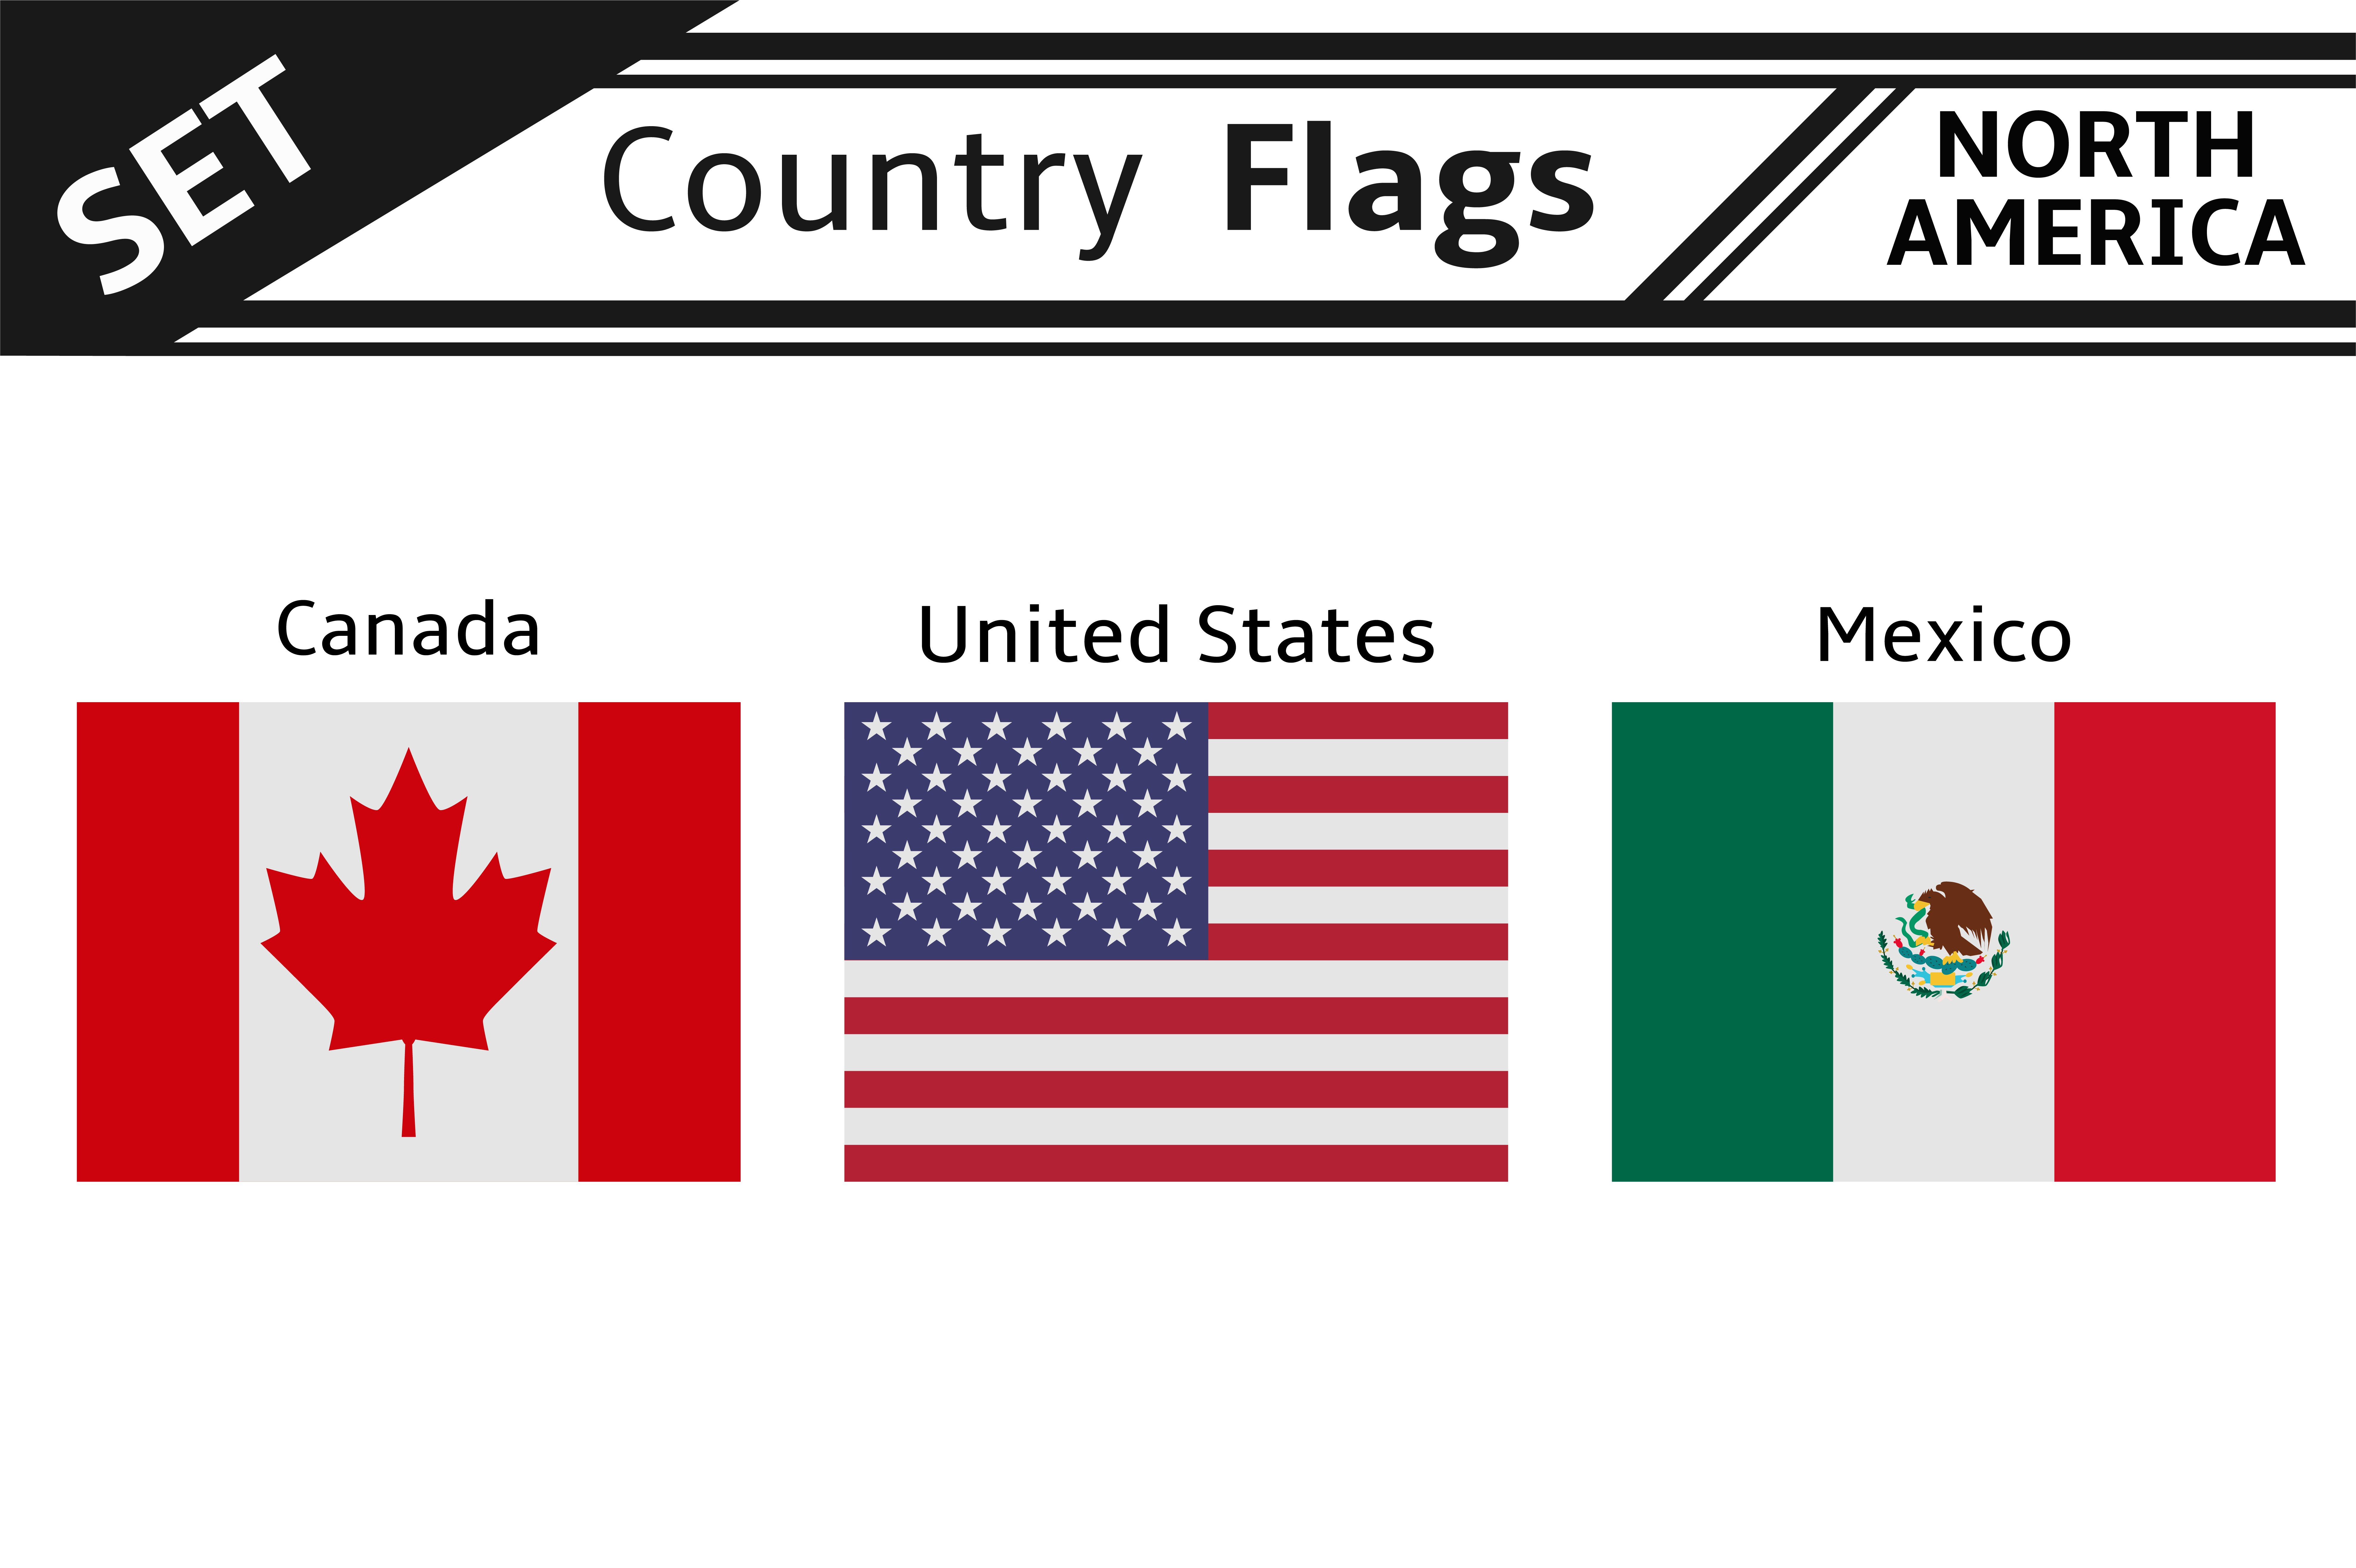 Set Countries Flags North America Illustrations Creative Market - north flags